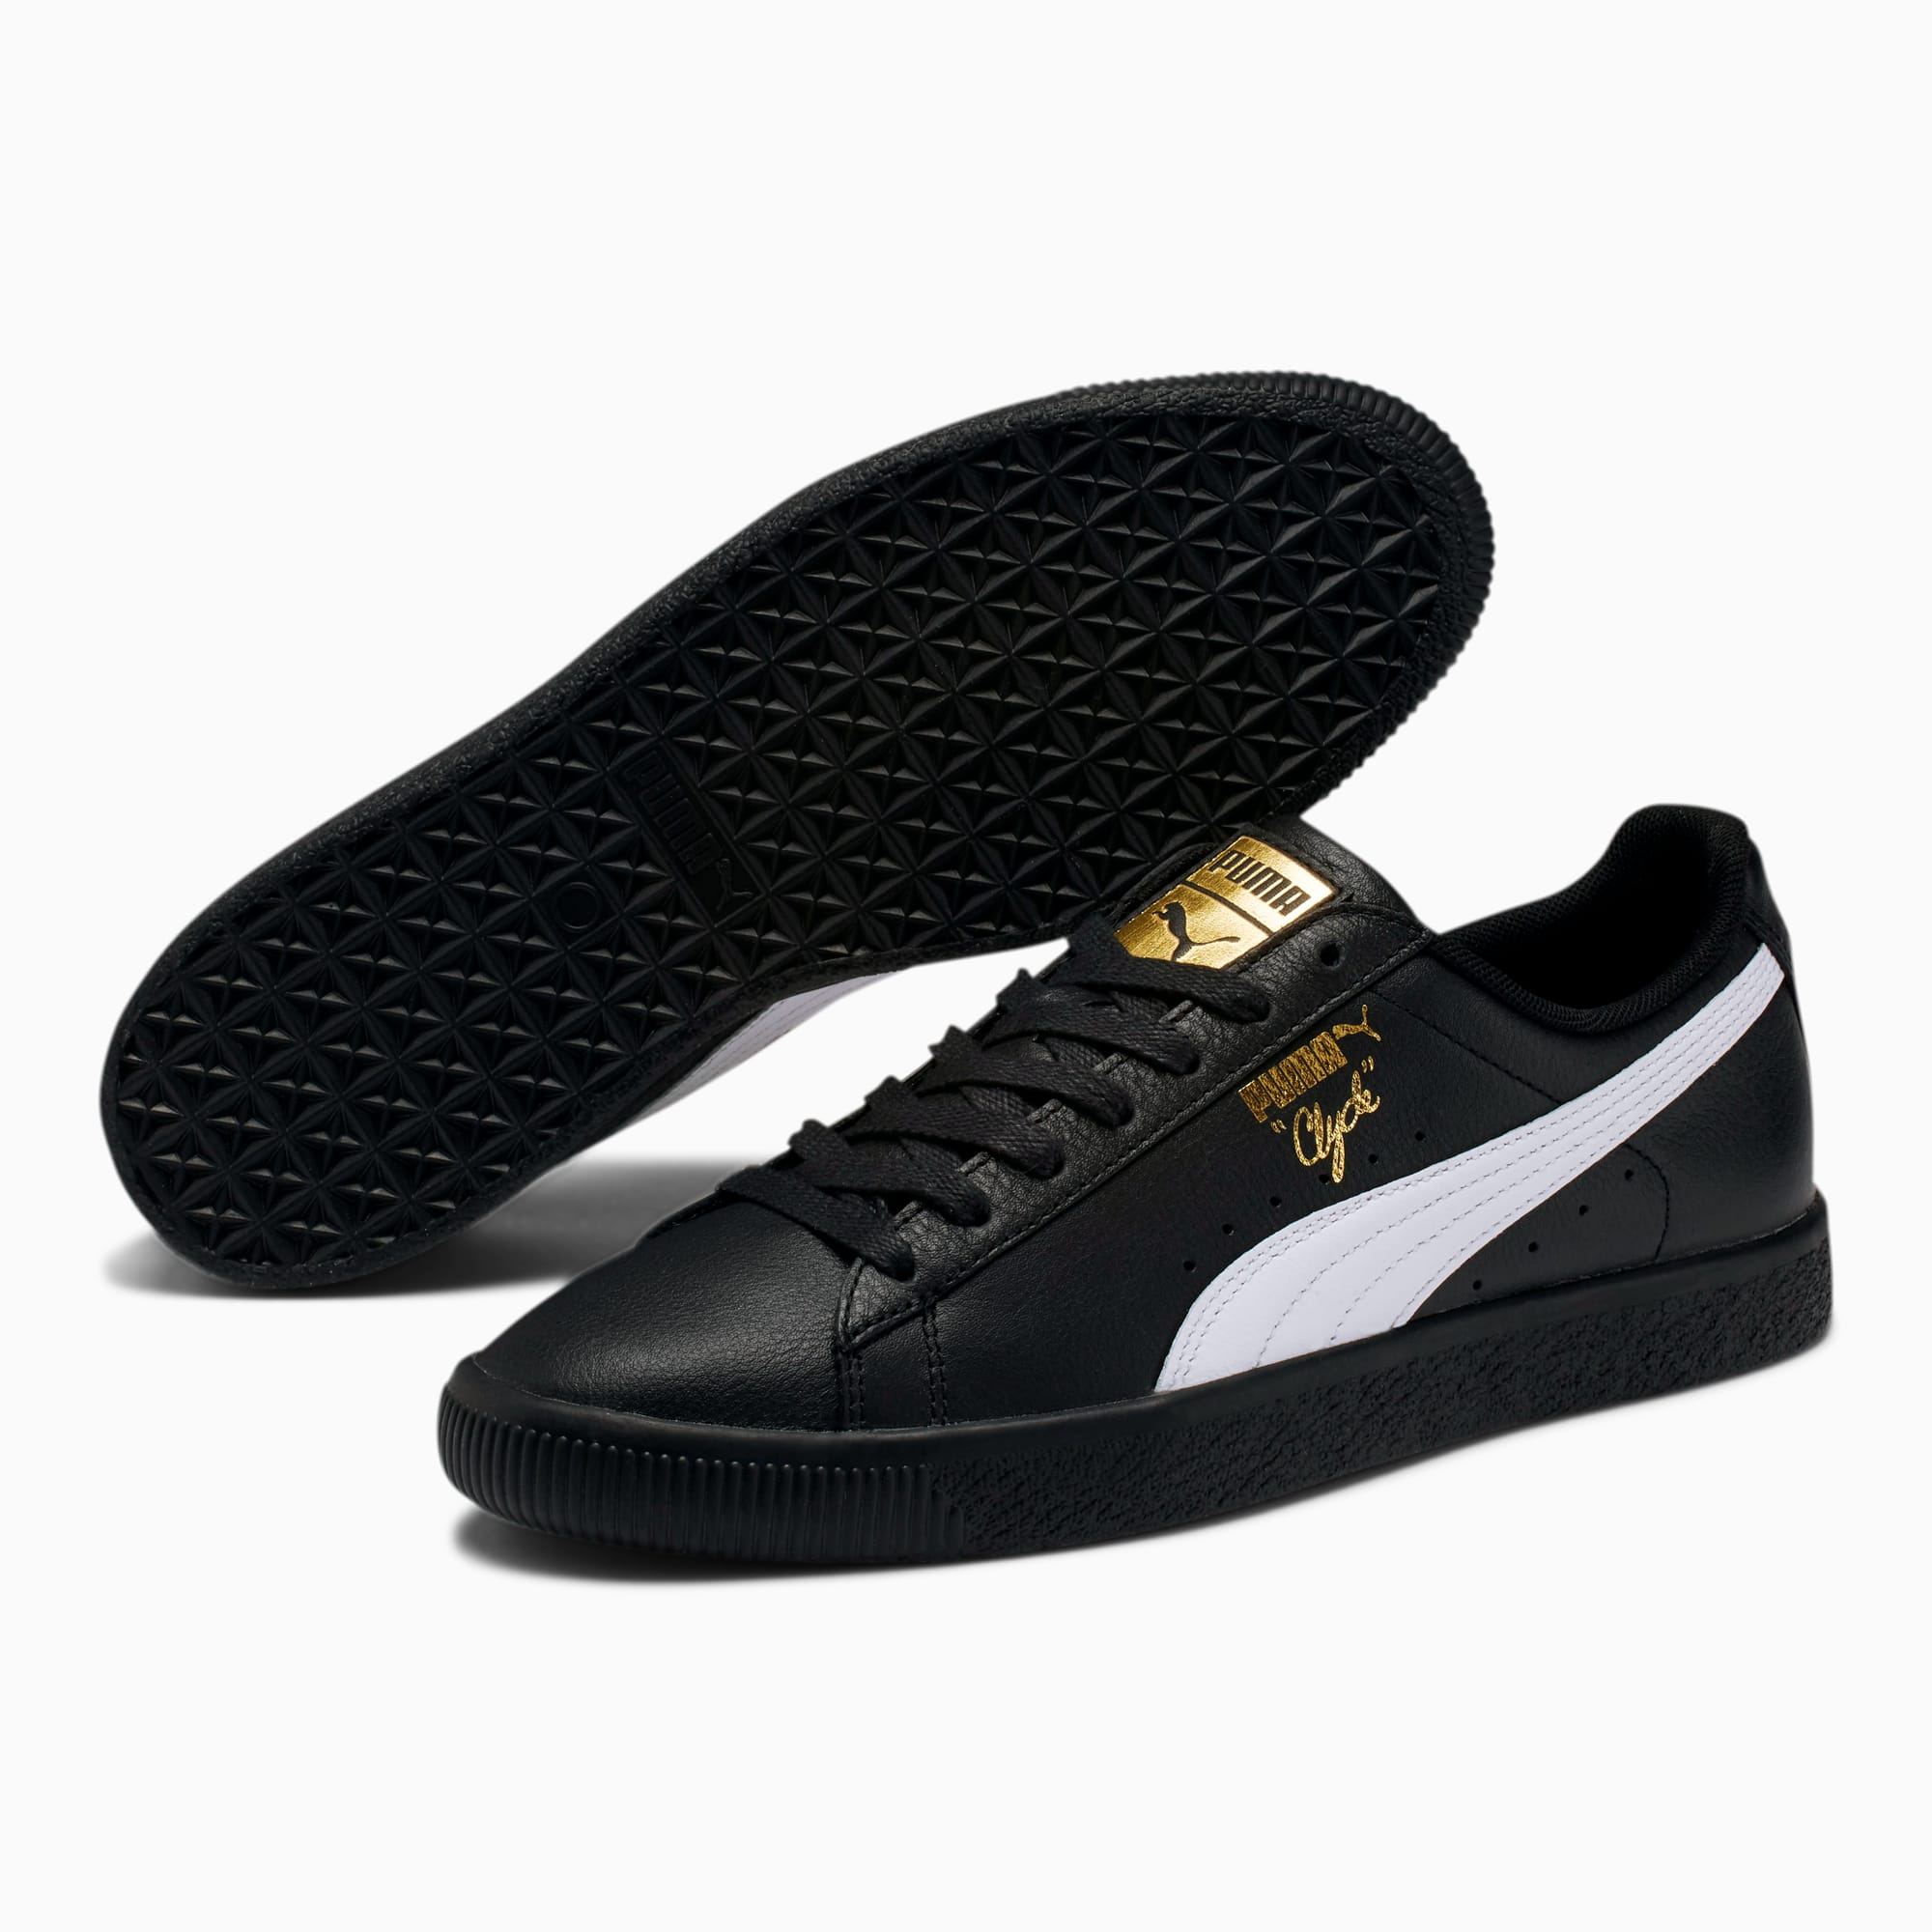 puma clyde core foil leather sneaker